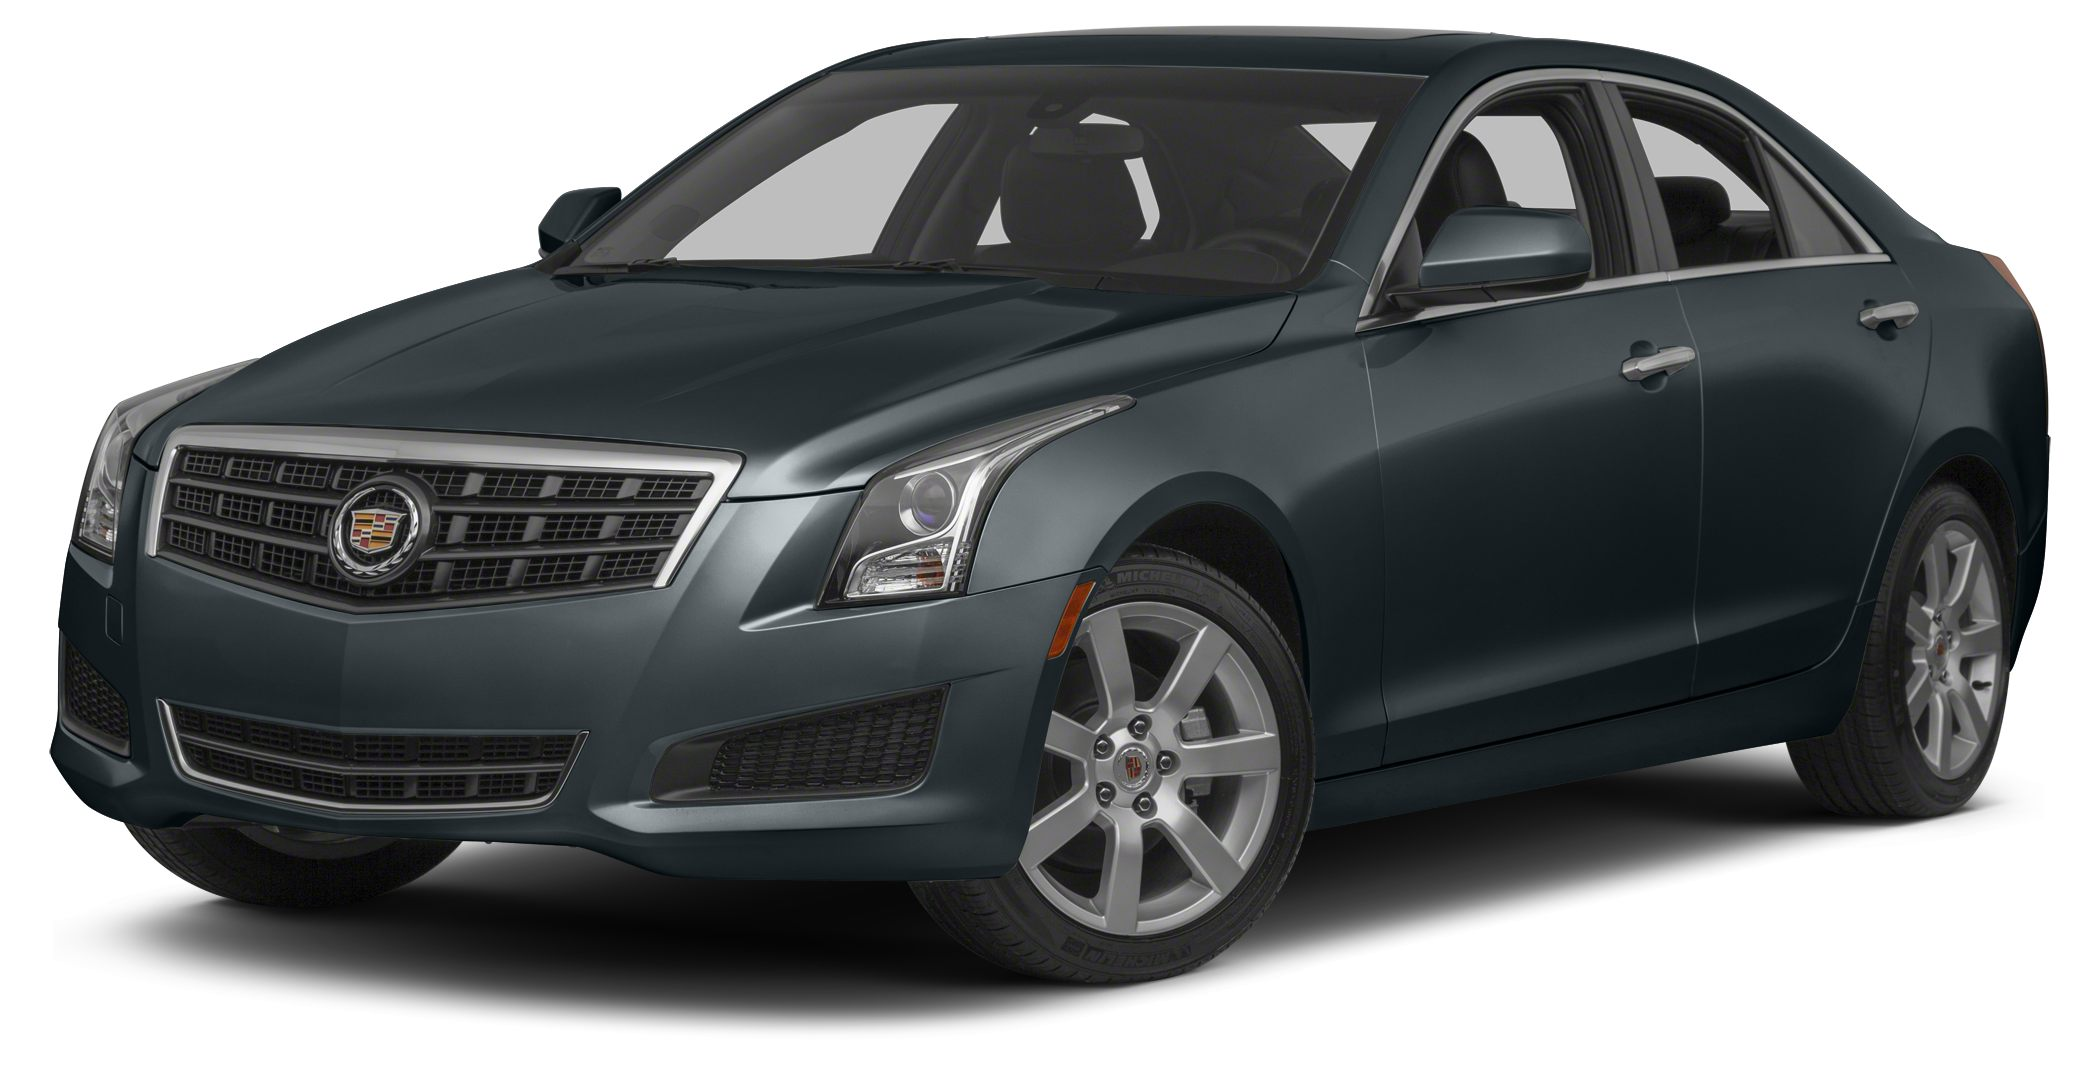 2013 Cadillac ATS 36 Luxury REMAINDER OF FACTORY WARRANTY Cadillac User Experience CUE Blueto